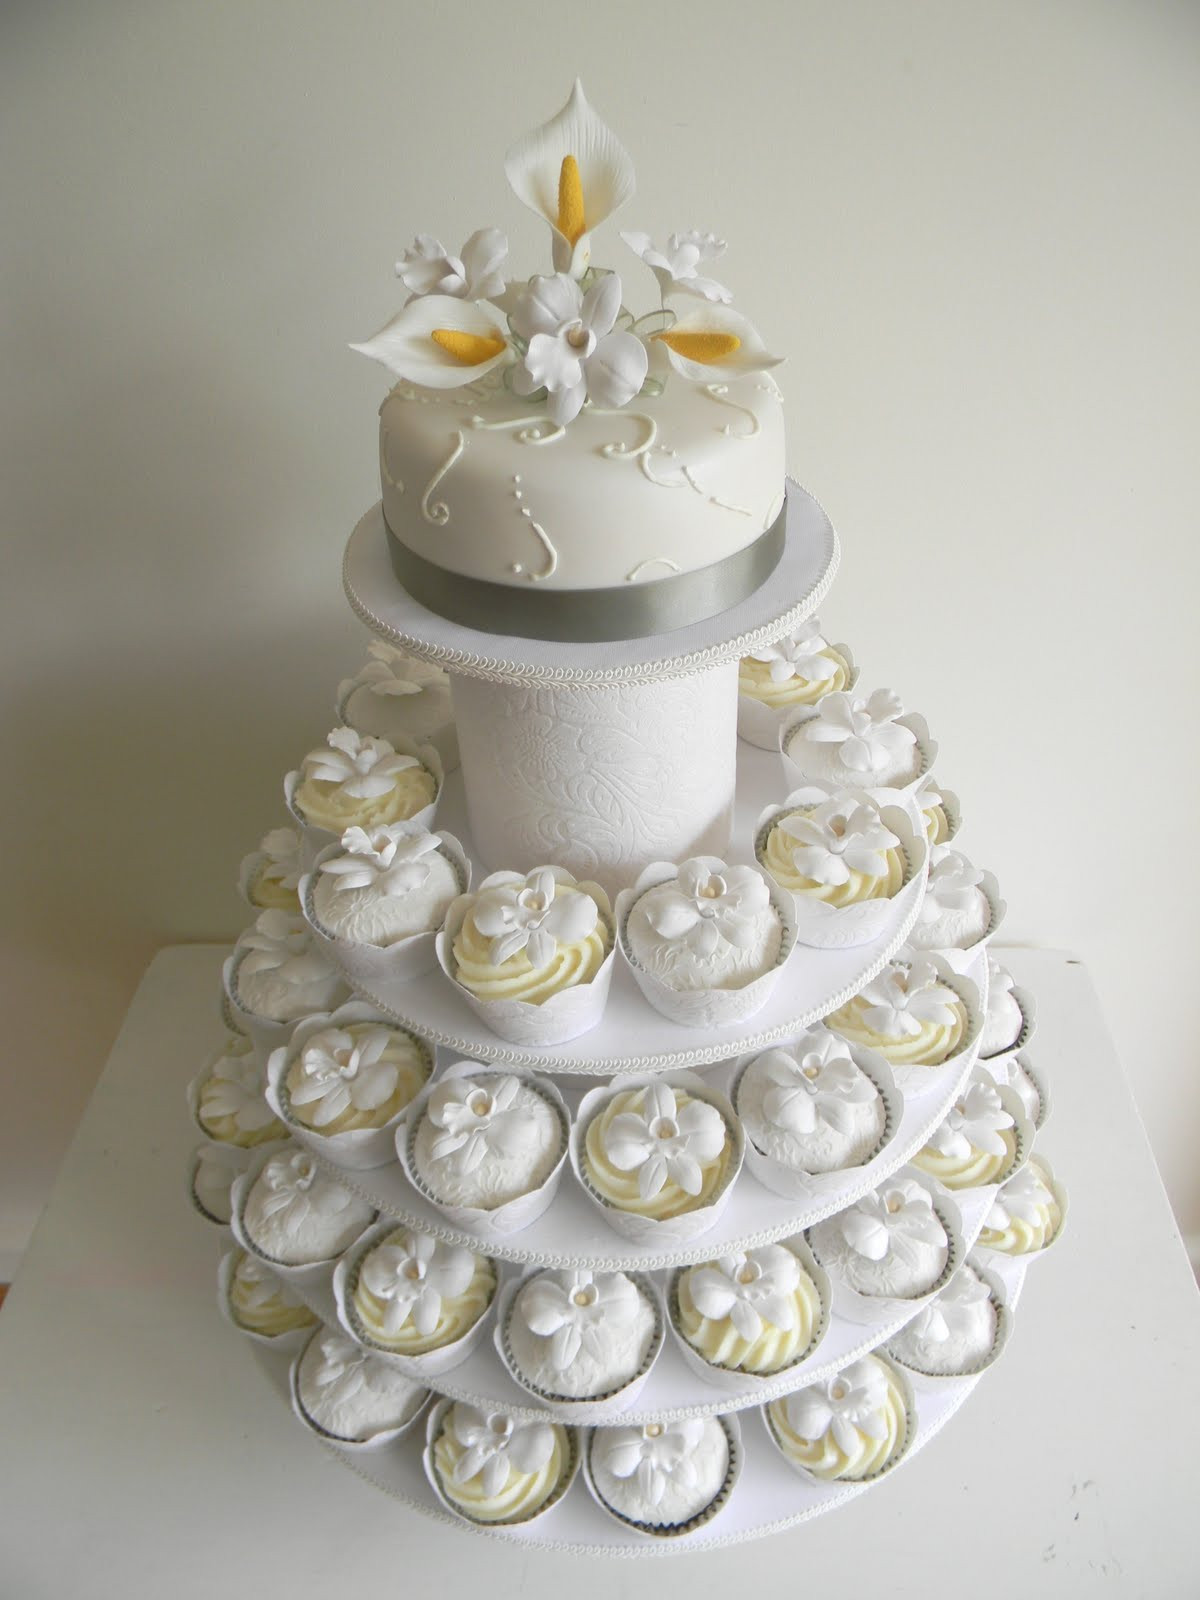 Wedding Cake Cupcakes  Just call me Martha Celia & Istvan s wedding cake & cupcakes